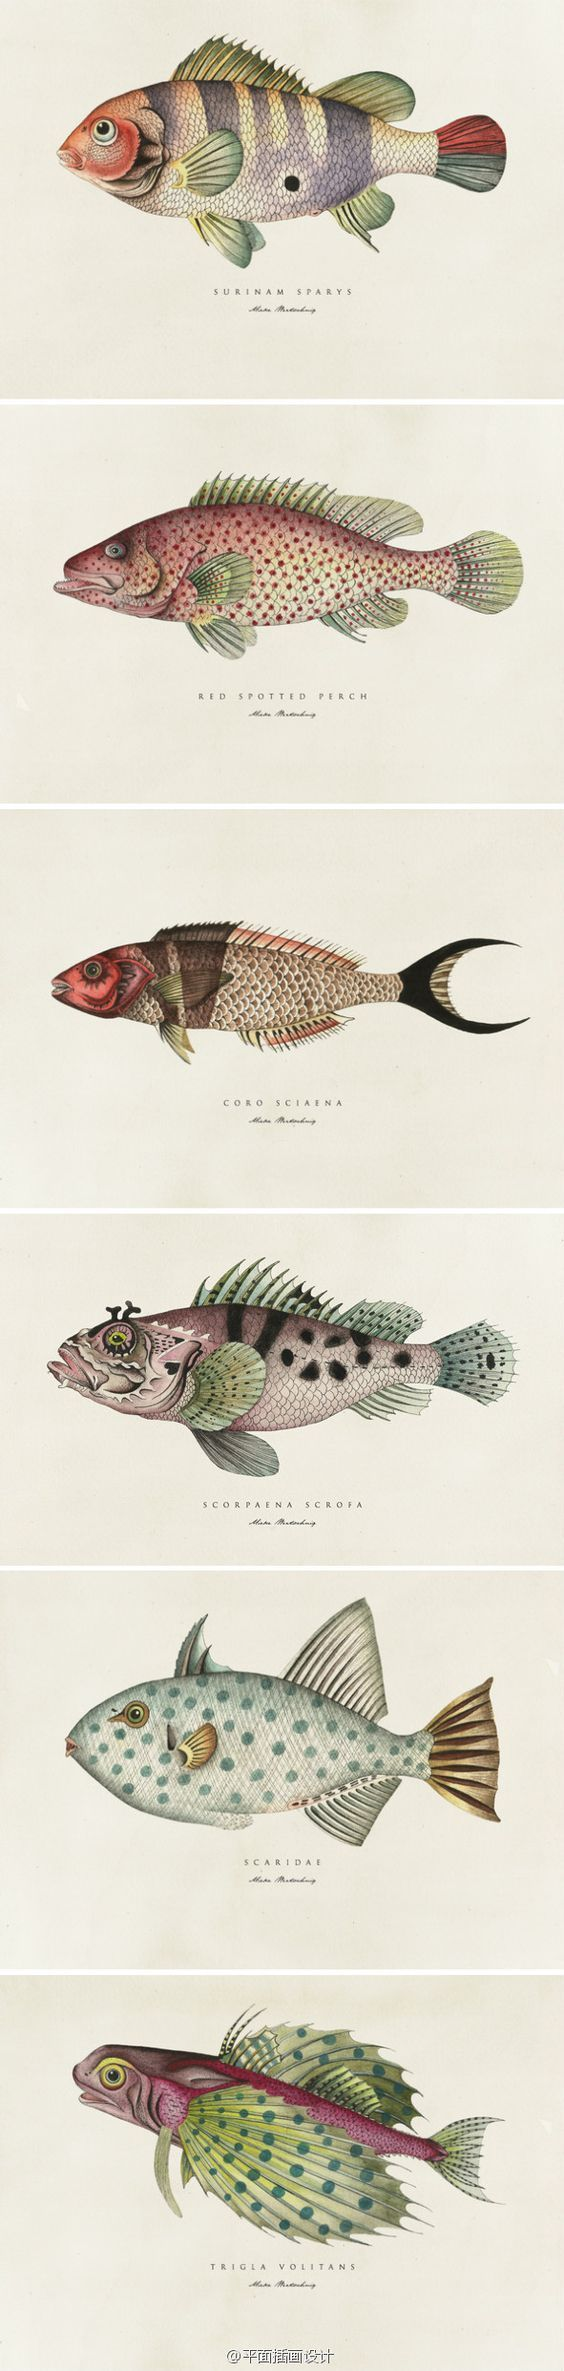 Fish Prints (artist unknown)